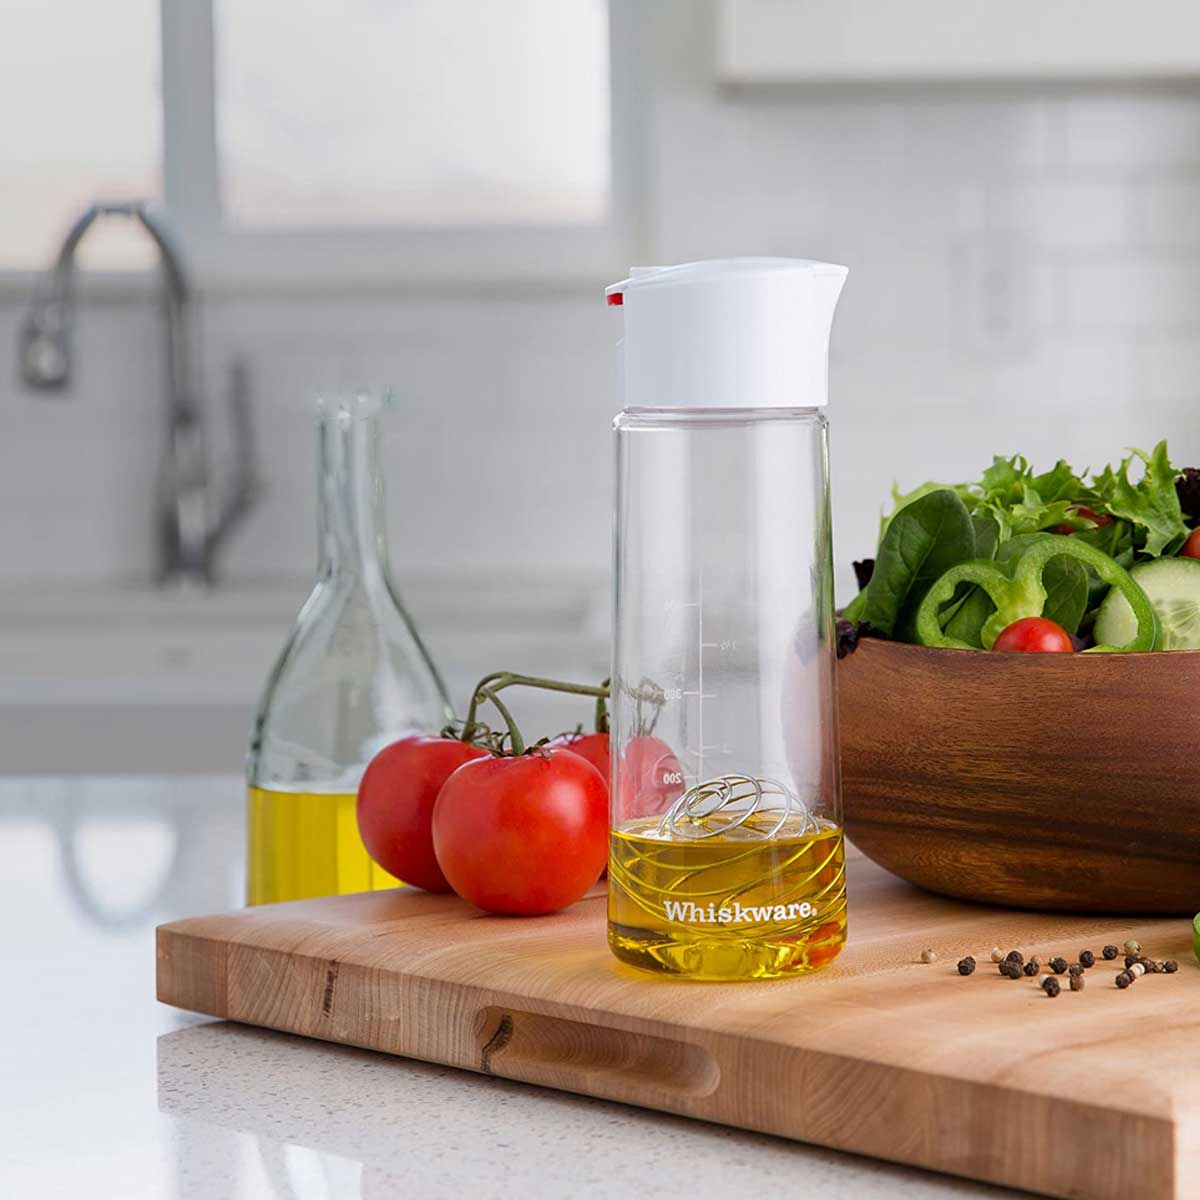 Whiskware Dressing Shaker